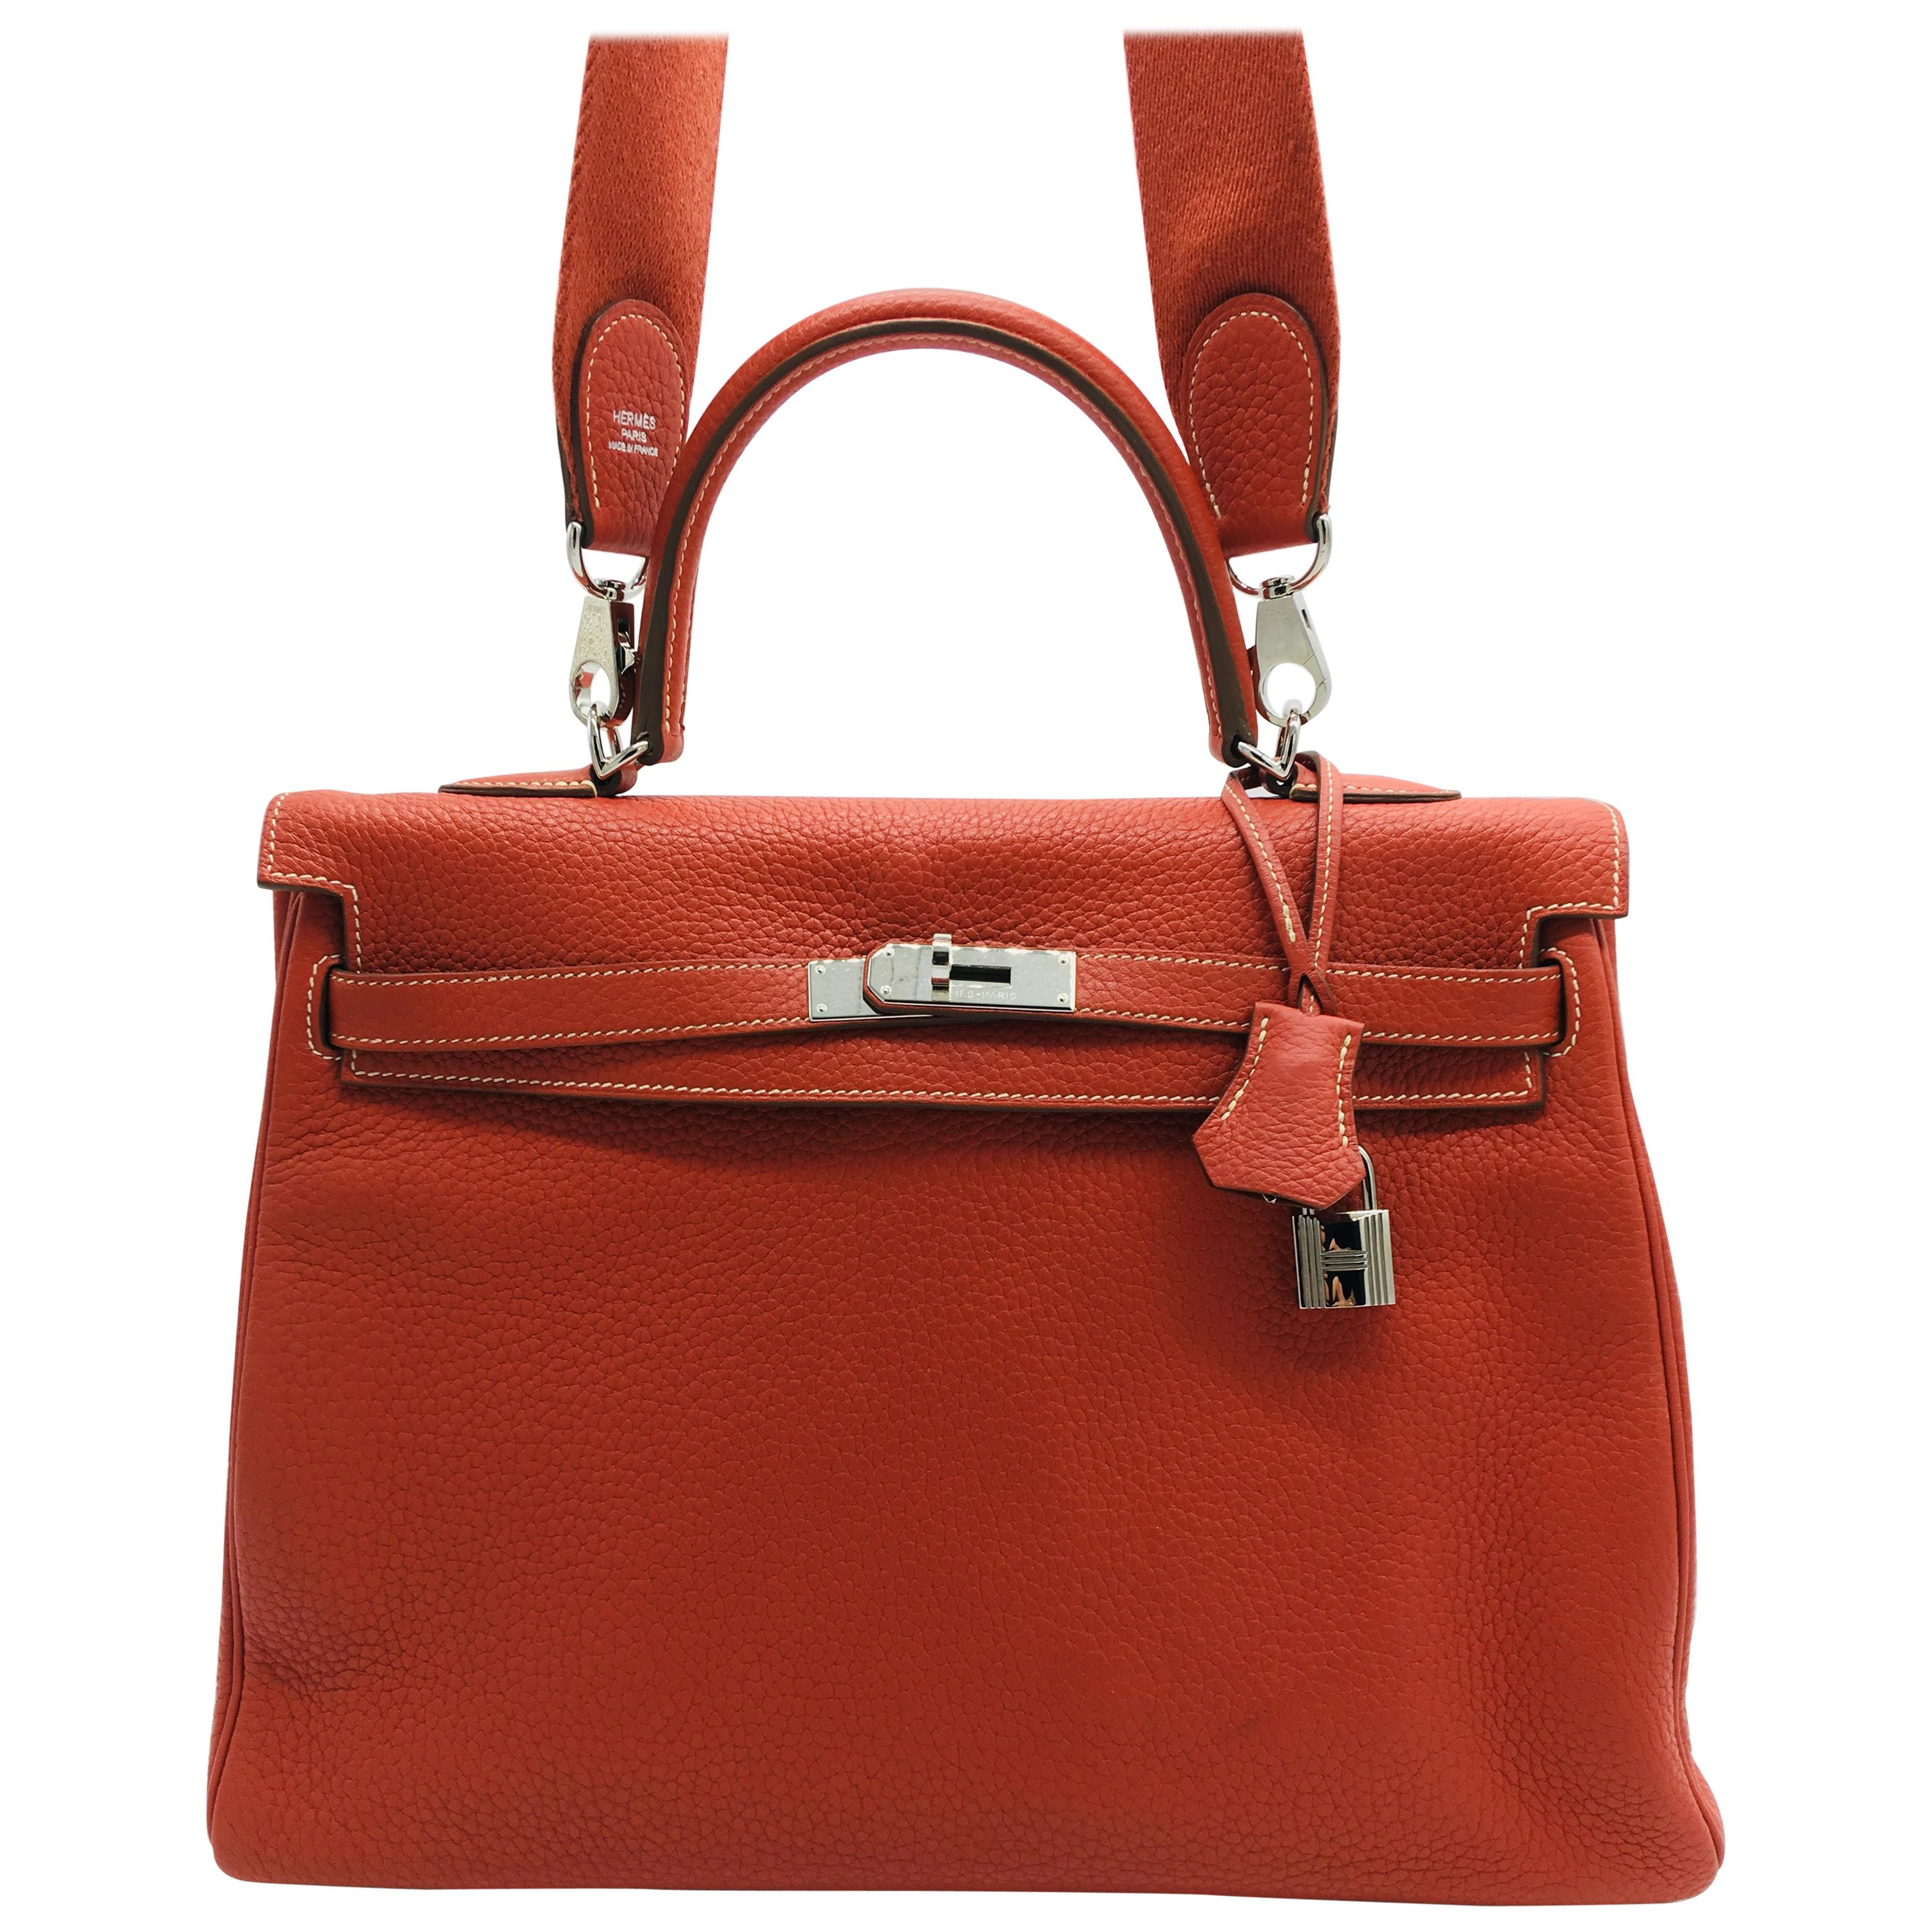 ec569a17fa Red Hermes Bags - 242 For Sale on 1stdibs